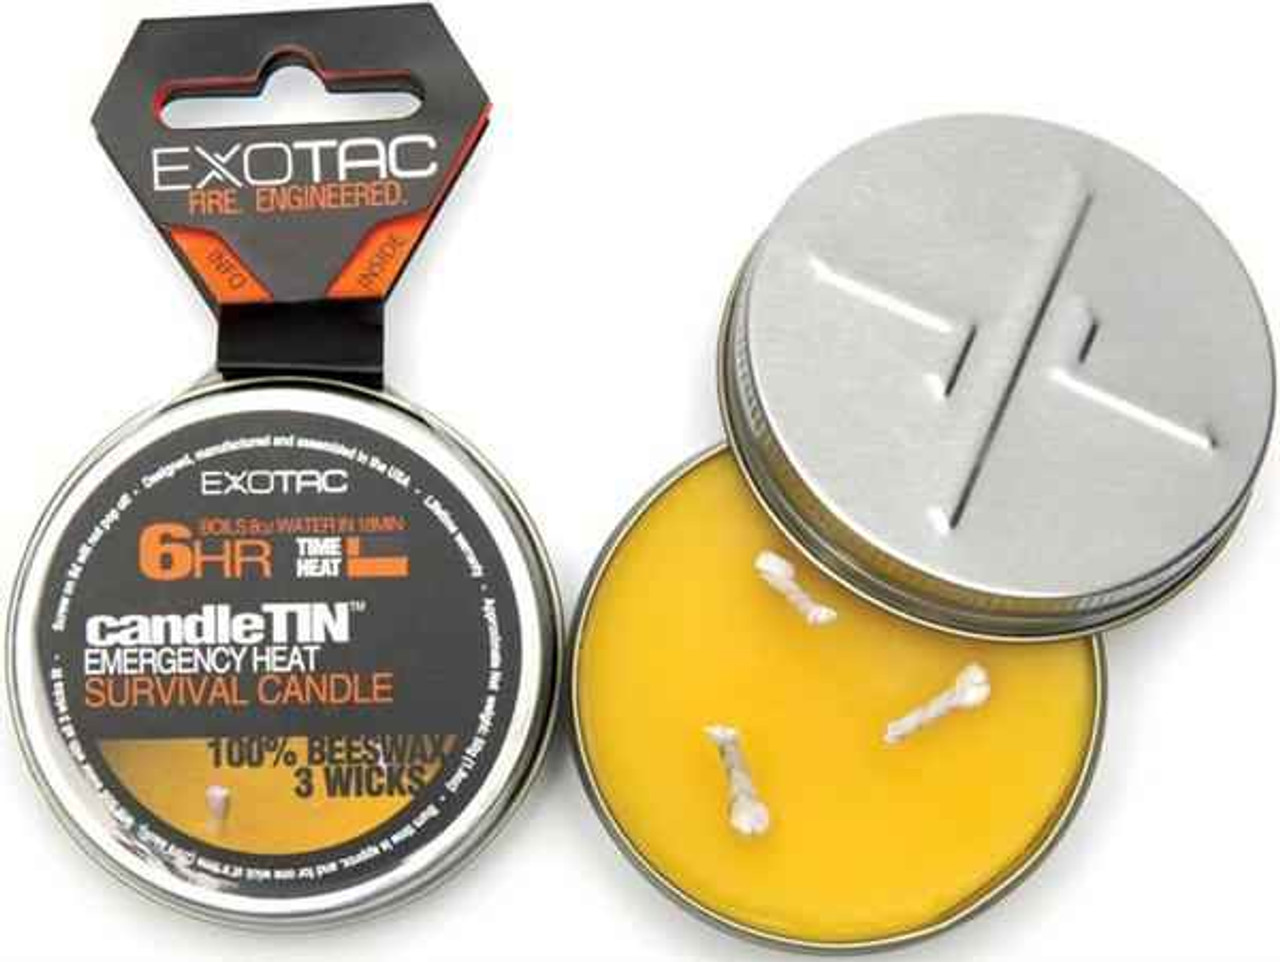 Exotac candleTIN Emergency Heat Survival Candle. Hot burning version. Up to 6 hour burn time